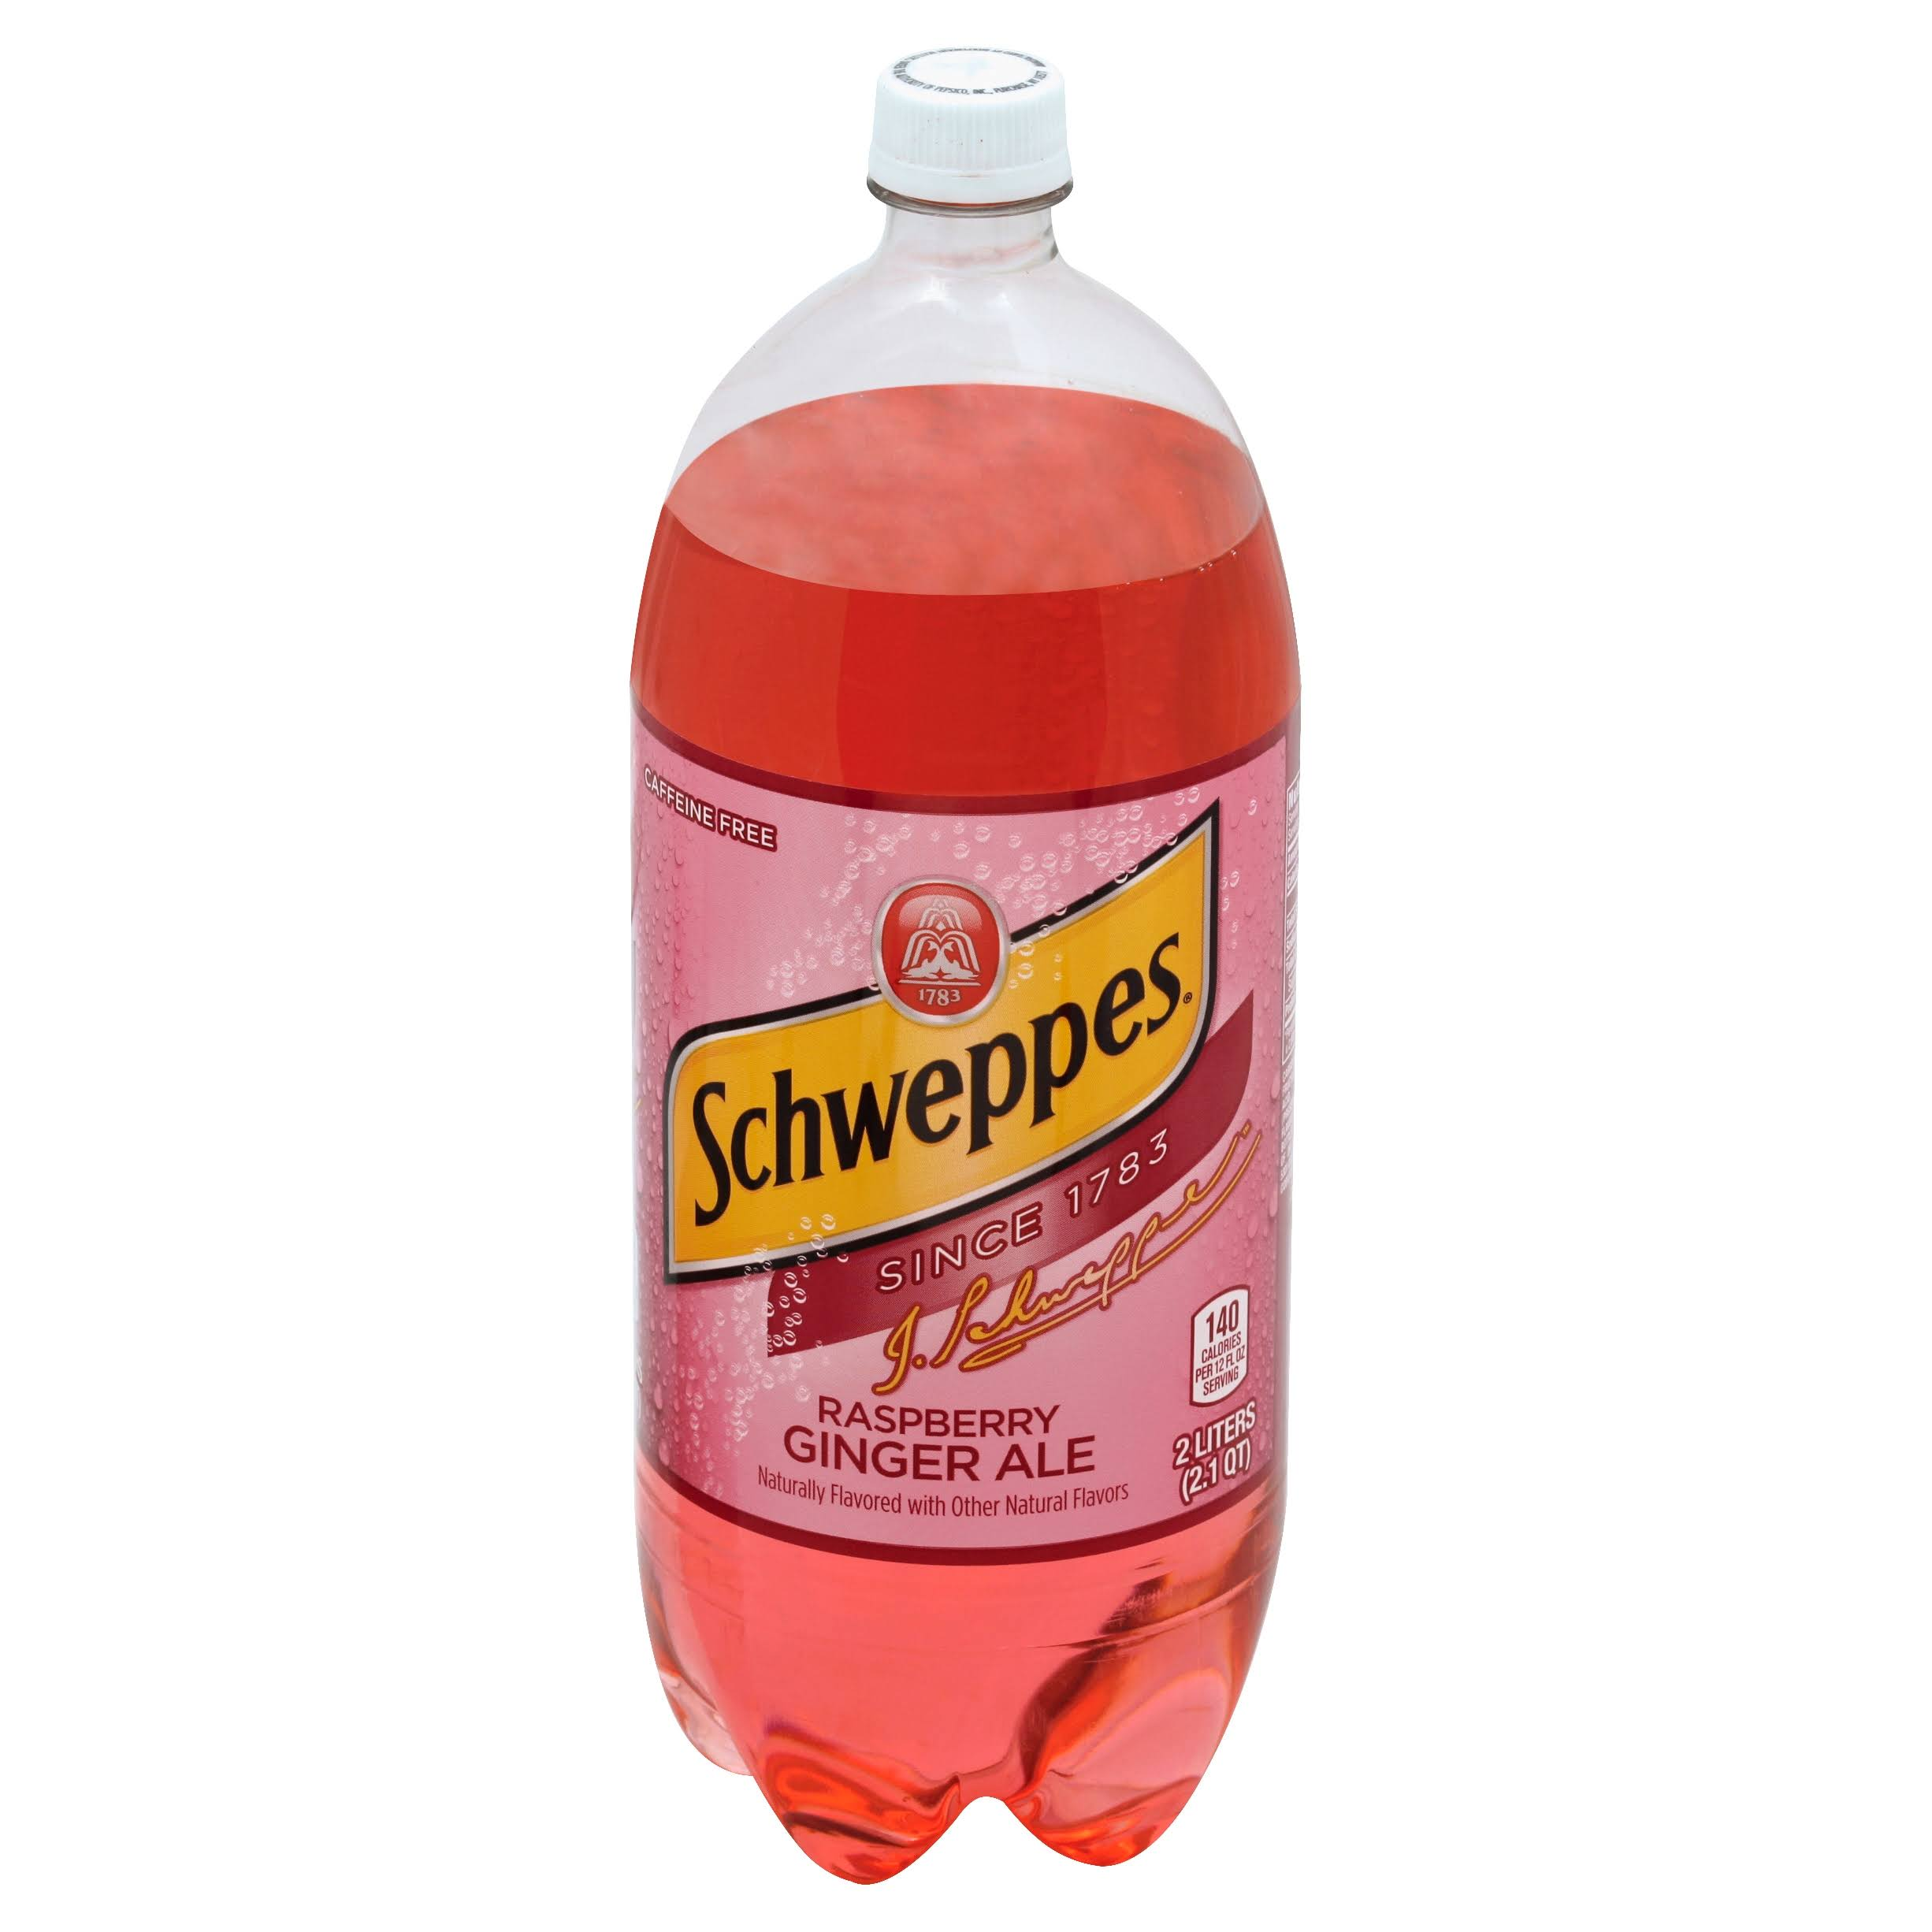 Schweppes Raspberry Ginger Ale - 2l